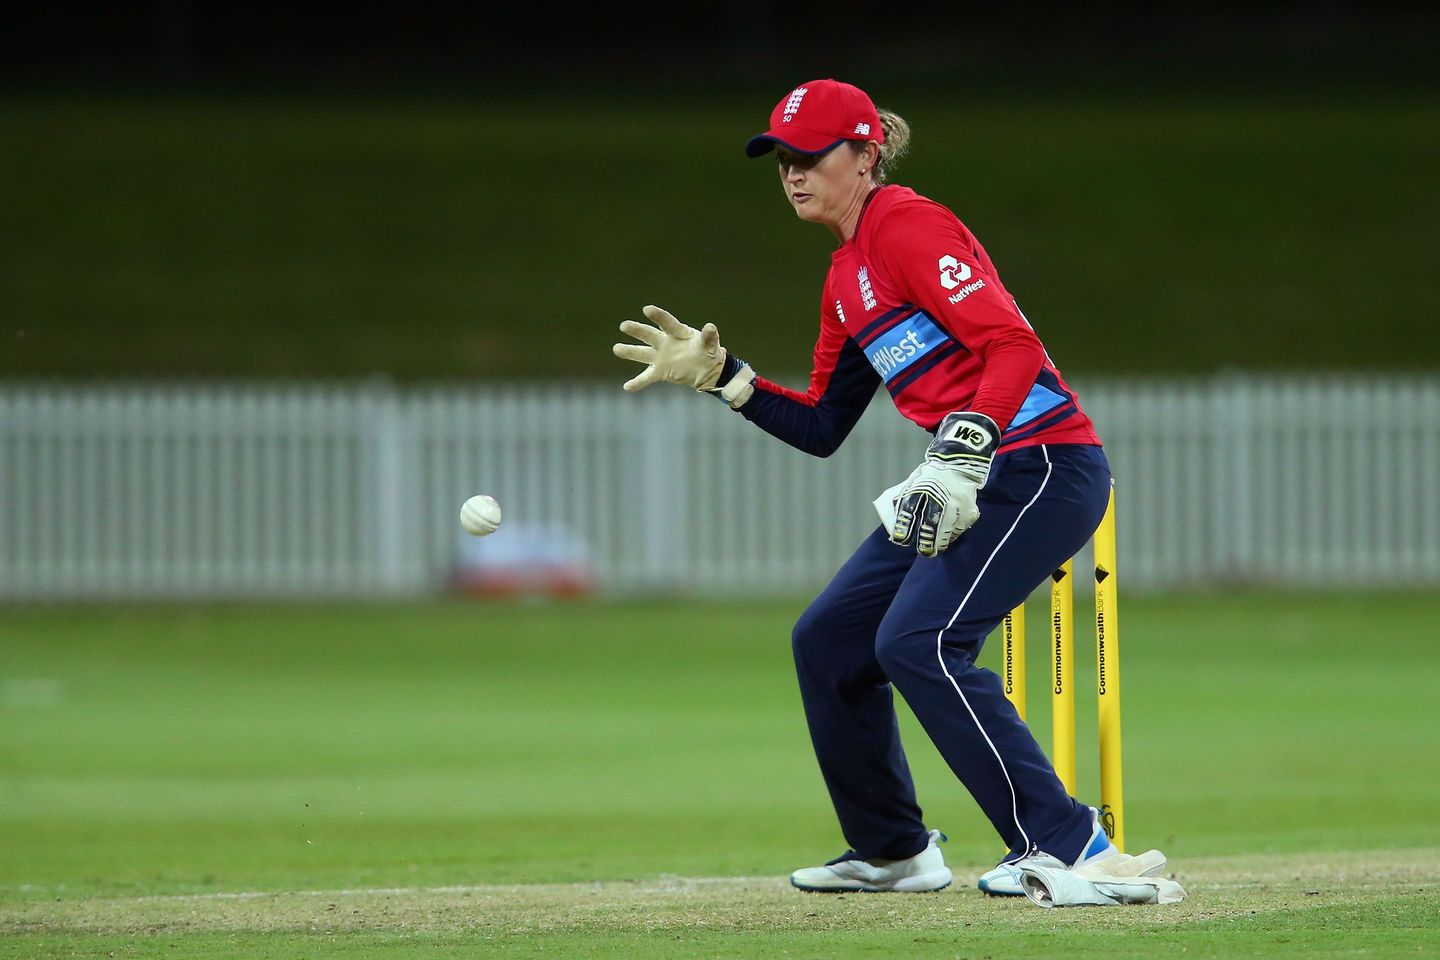 Sarah Taylor is one of England's greatest ever keepers